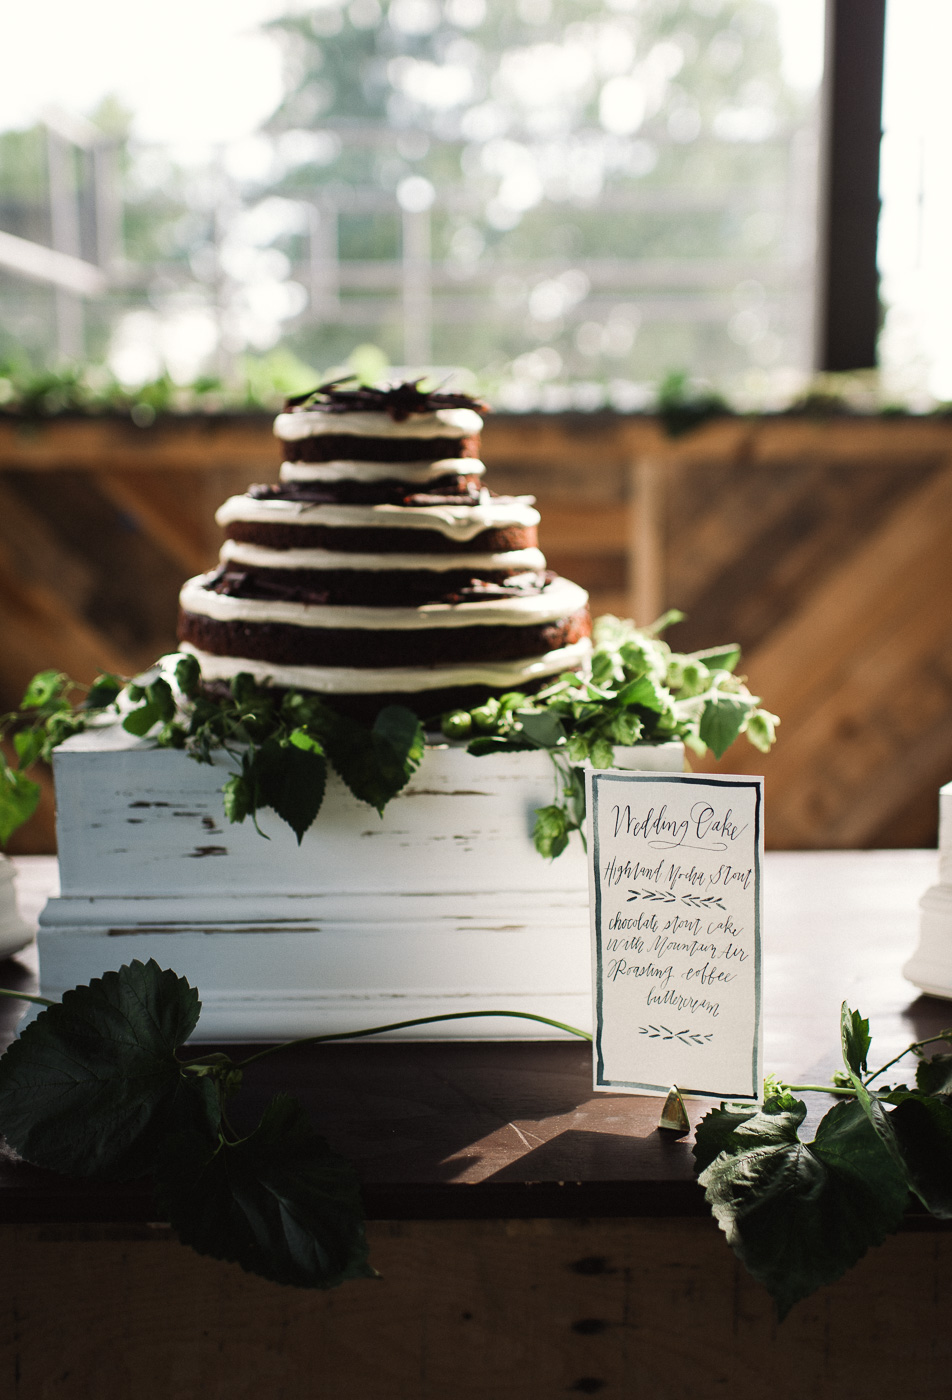 Highland brewing asheville wedding cakes